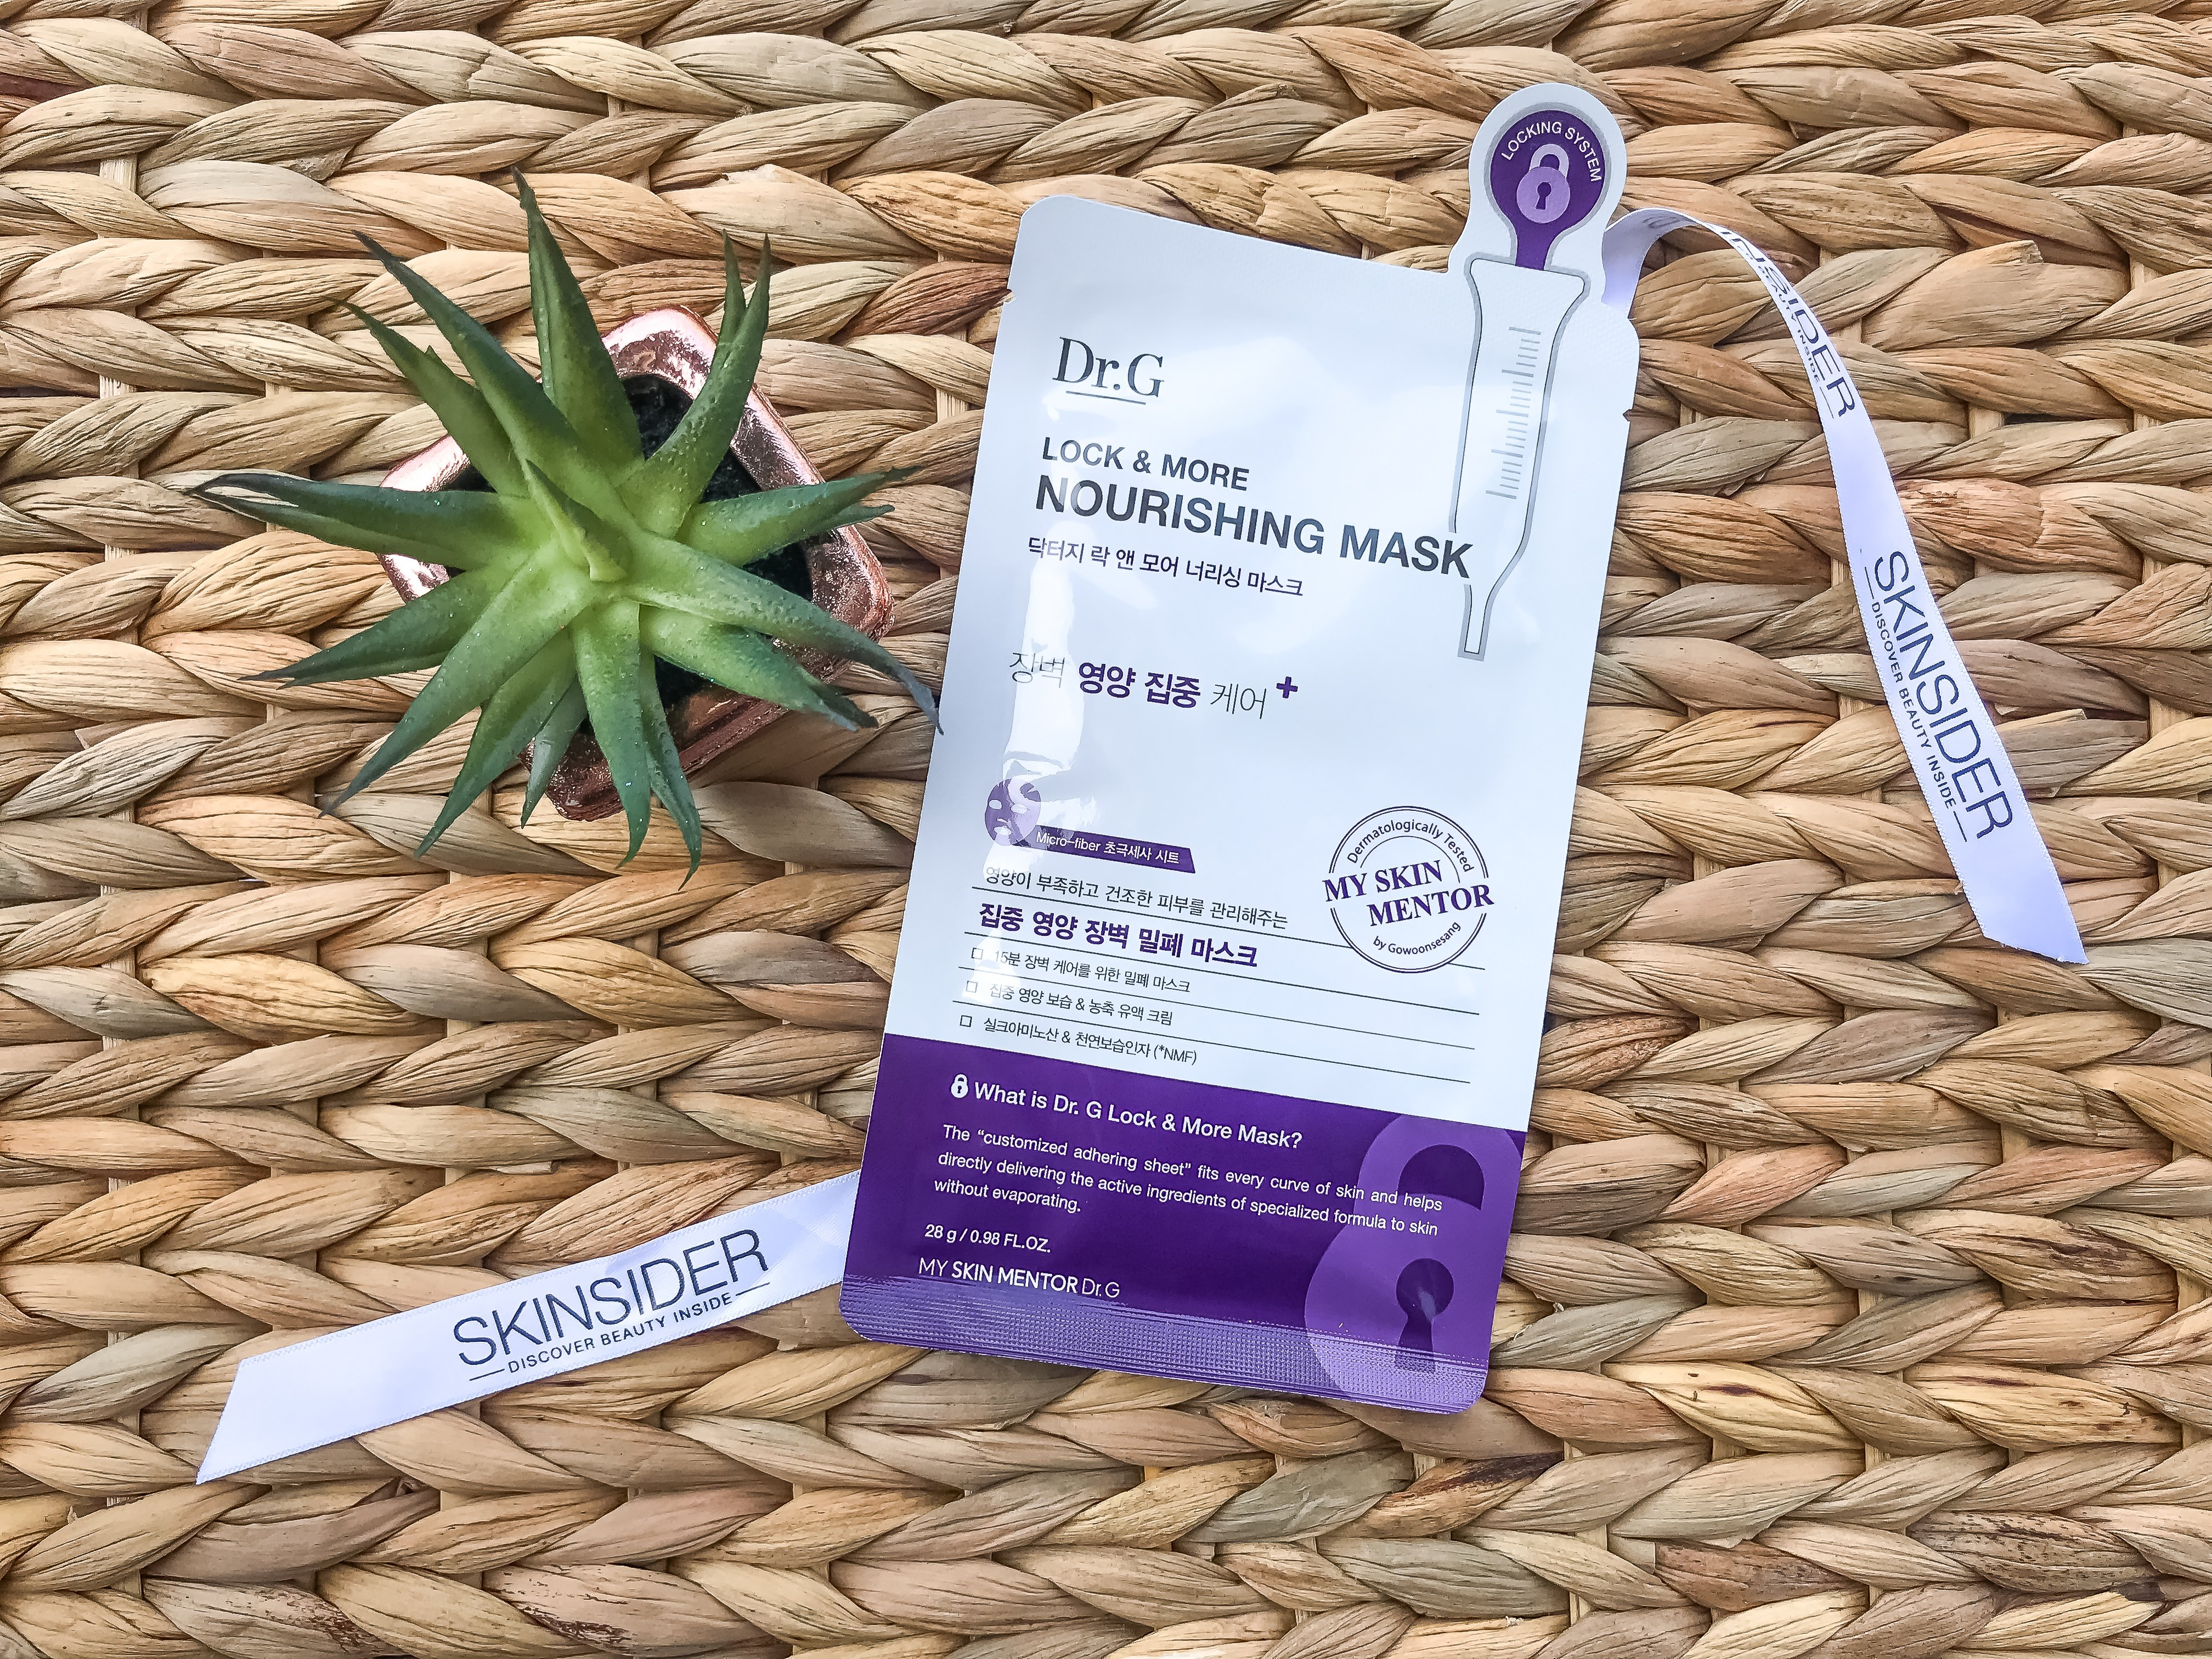 Lock & More Nourishing Mask by Dr.G